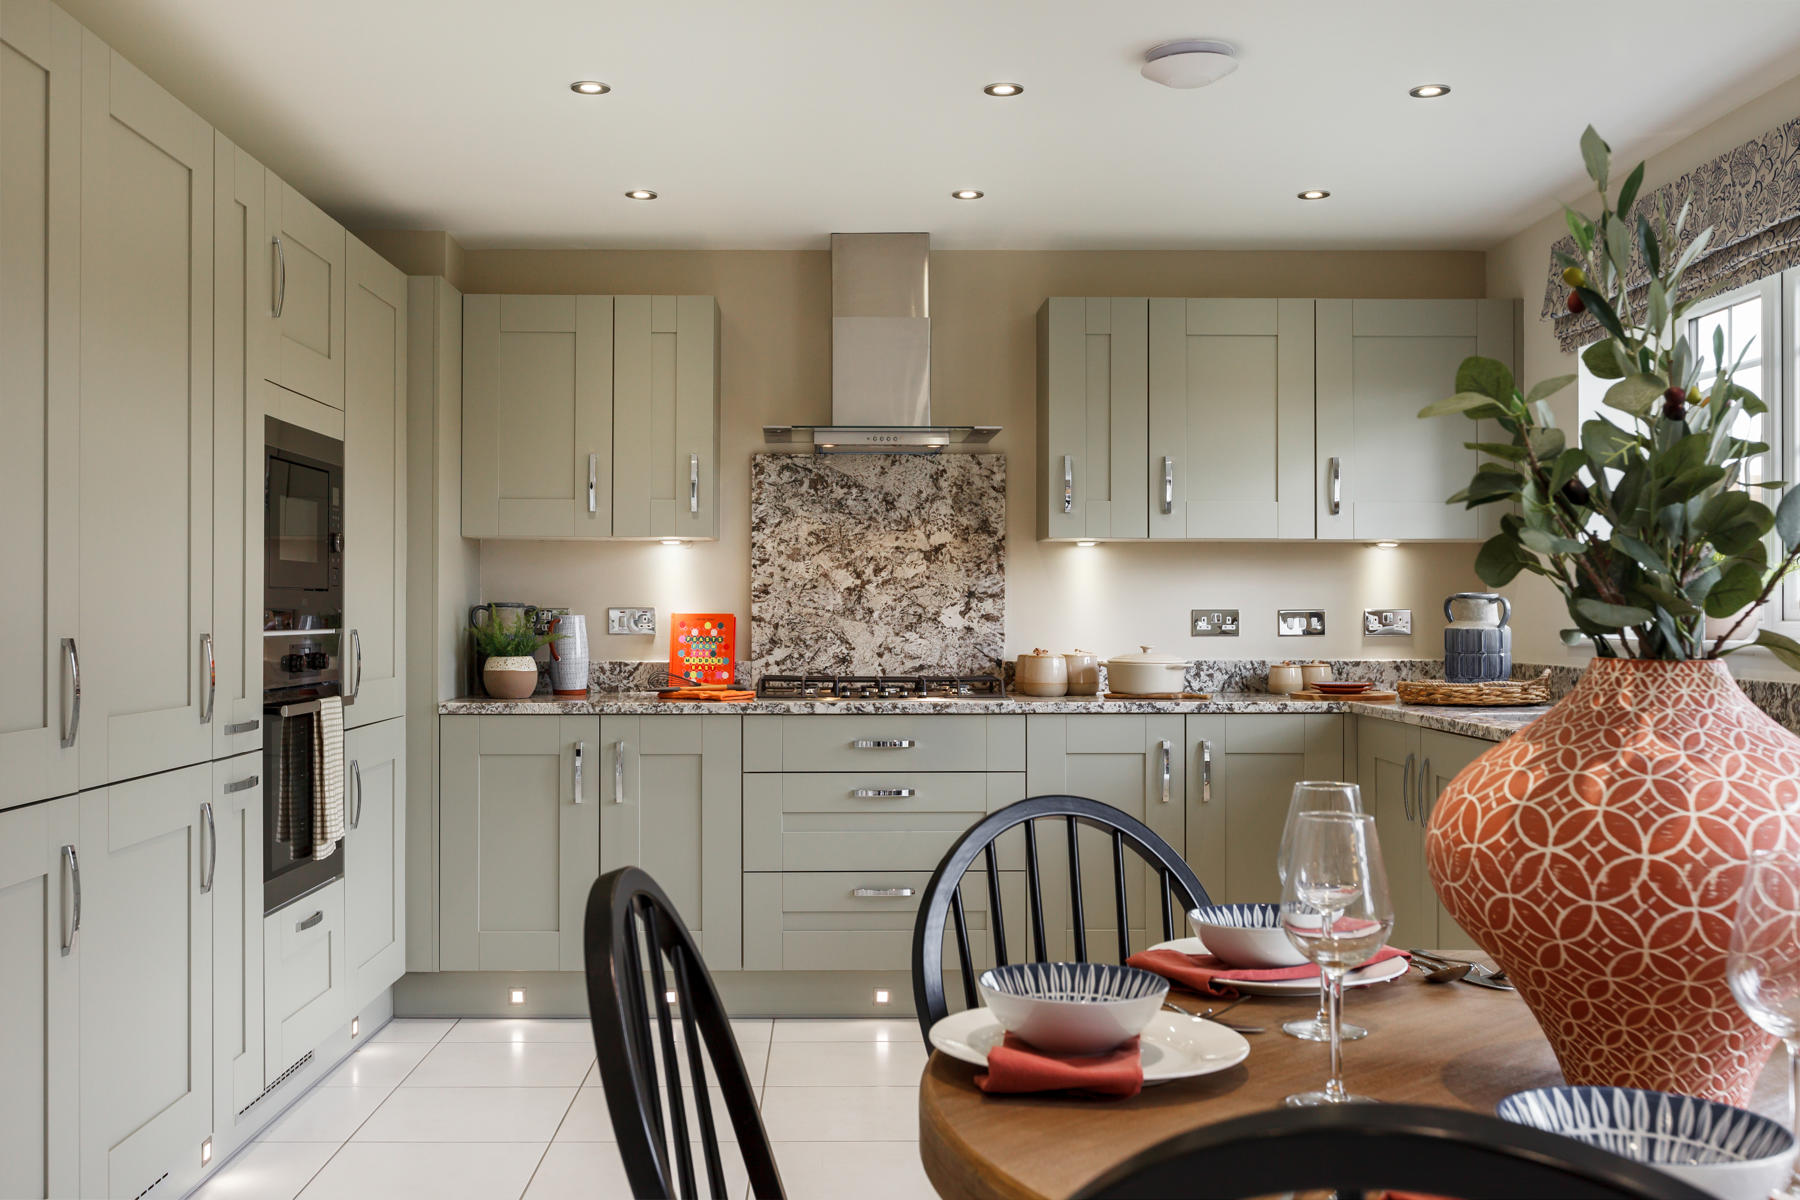 TW NY_Lime Gardens_Haddenham_Kitchen 1_1800x1200